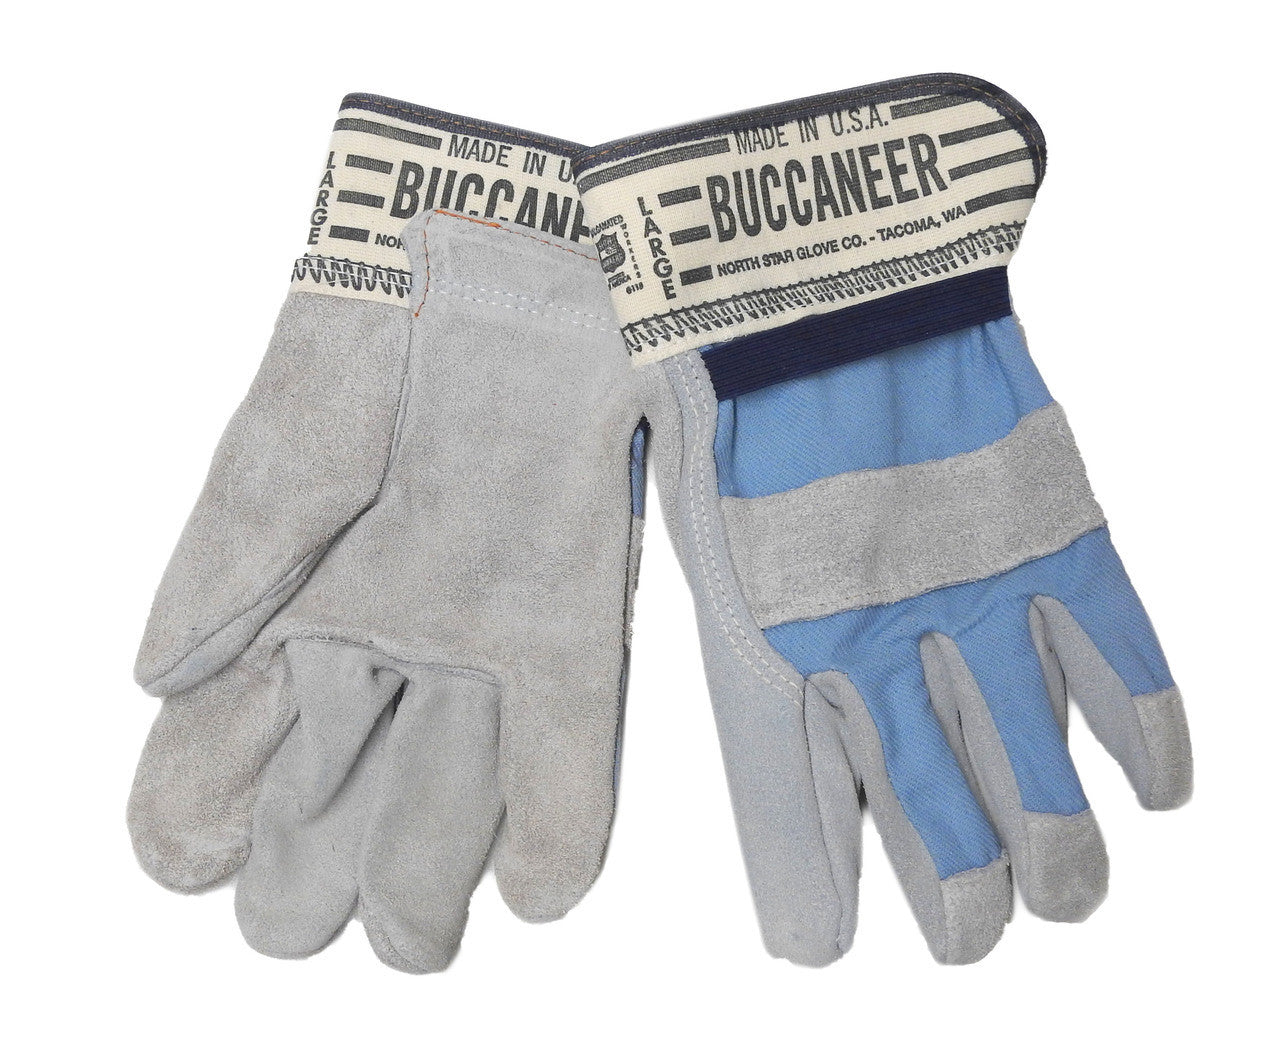 North Star Buccaneer Gloves